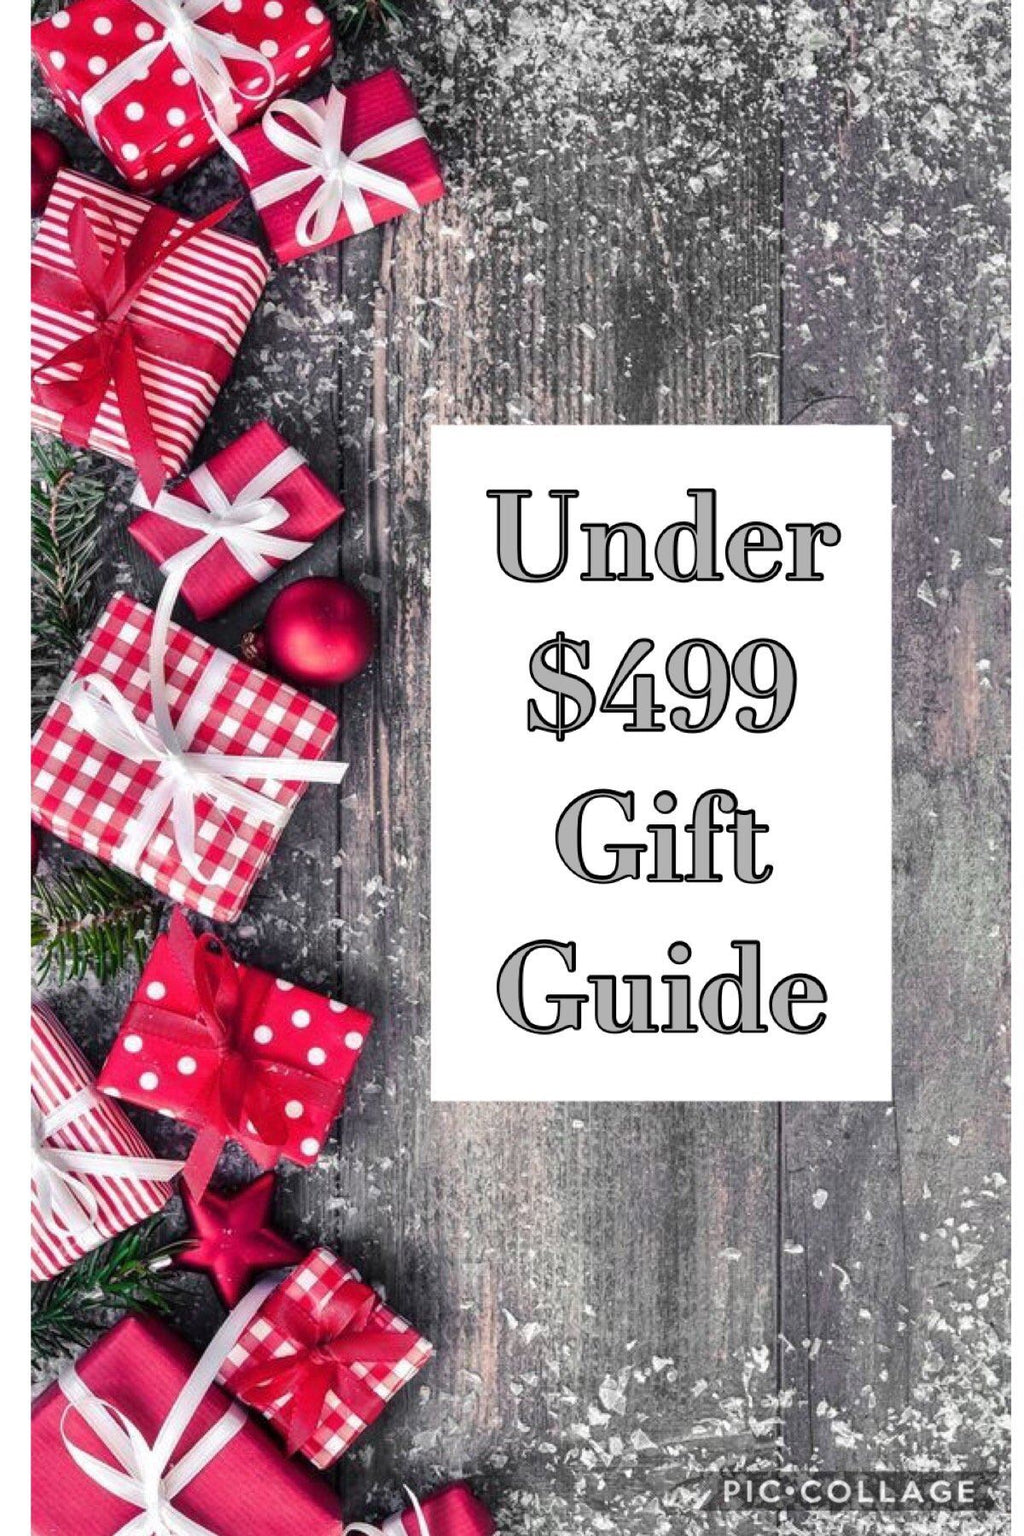 Under $499 Gift Guide